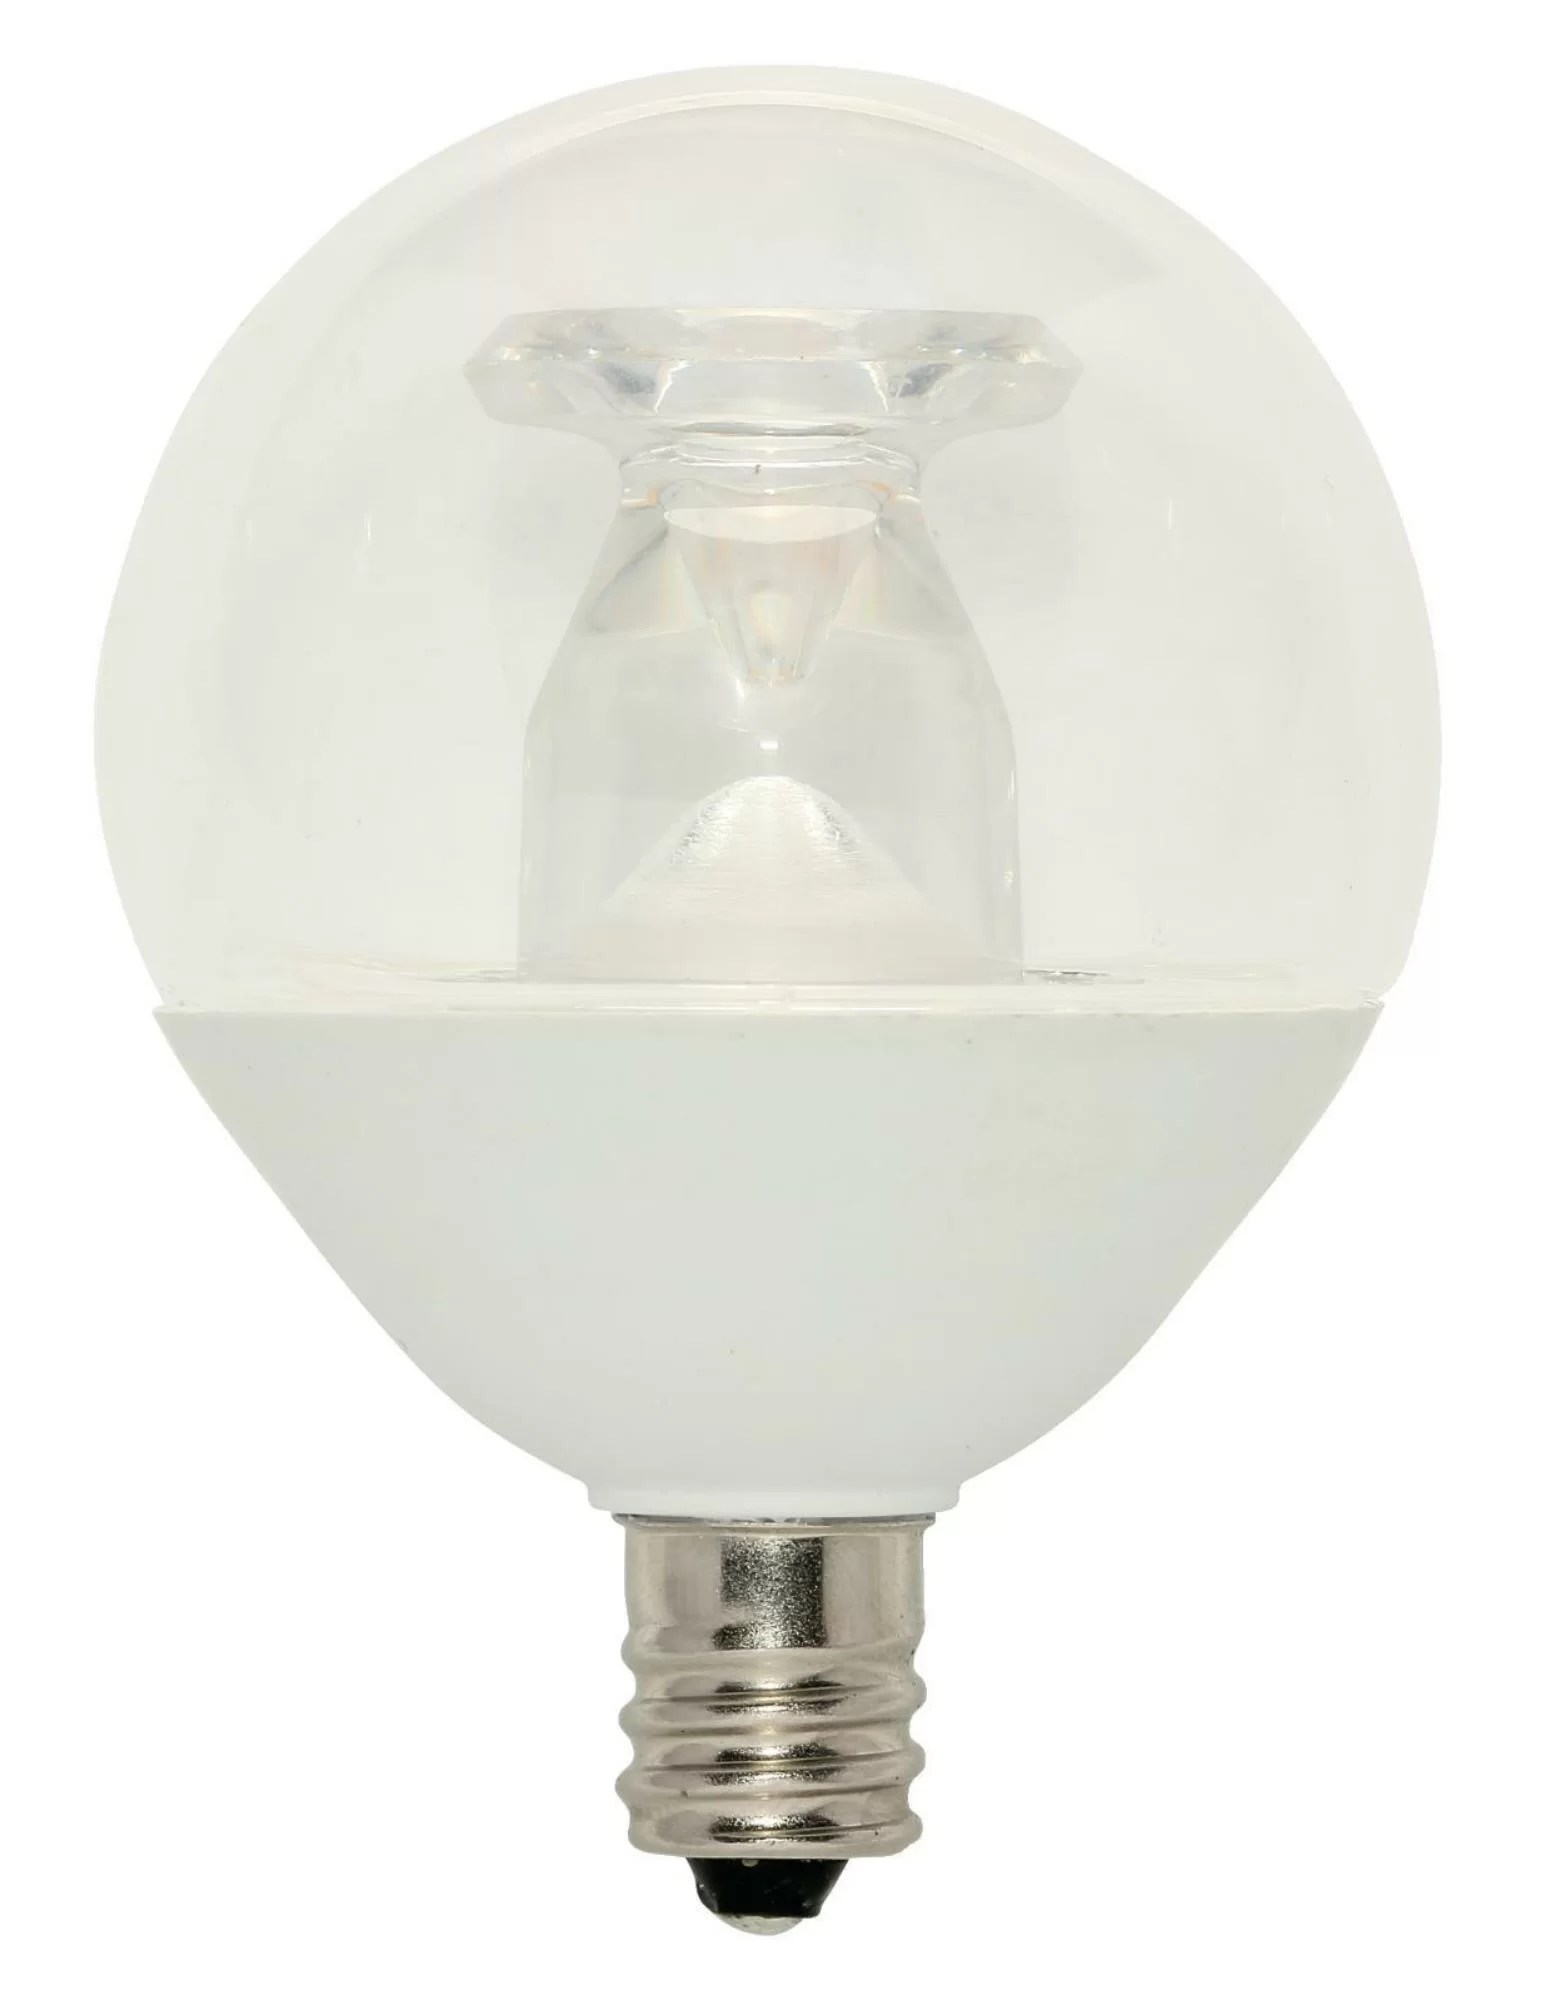 60w Light Bulb 7 Watt 60 Watt Equivalent G16 5 Led Dimmable Light Bulb Warm White 2700k E12 Base